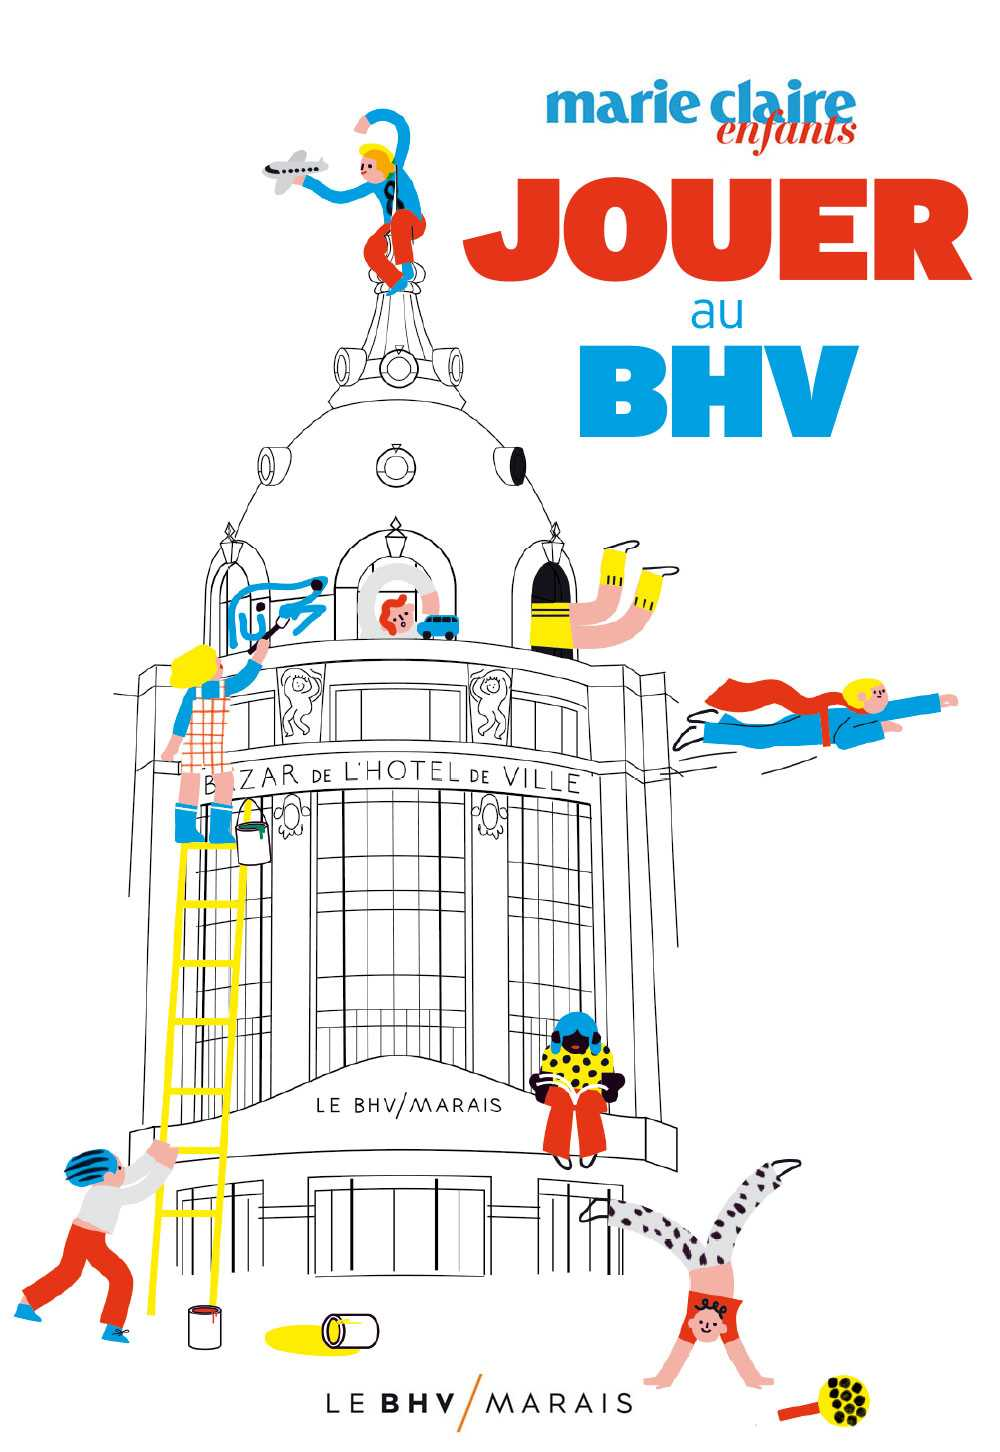 MarieClaireEnfants_Jouer-at-the-BHV